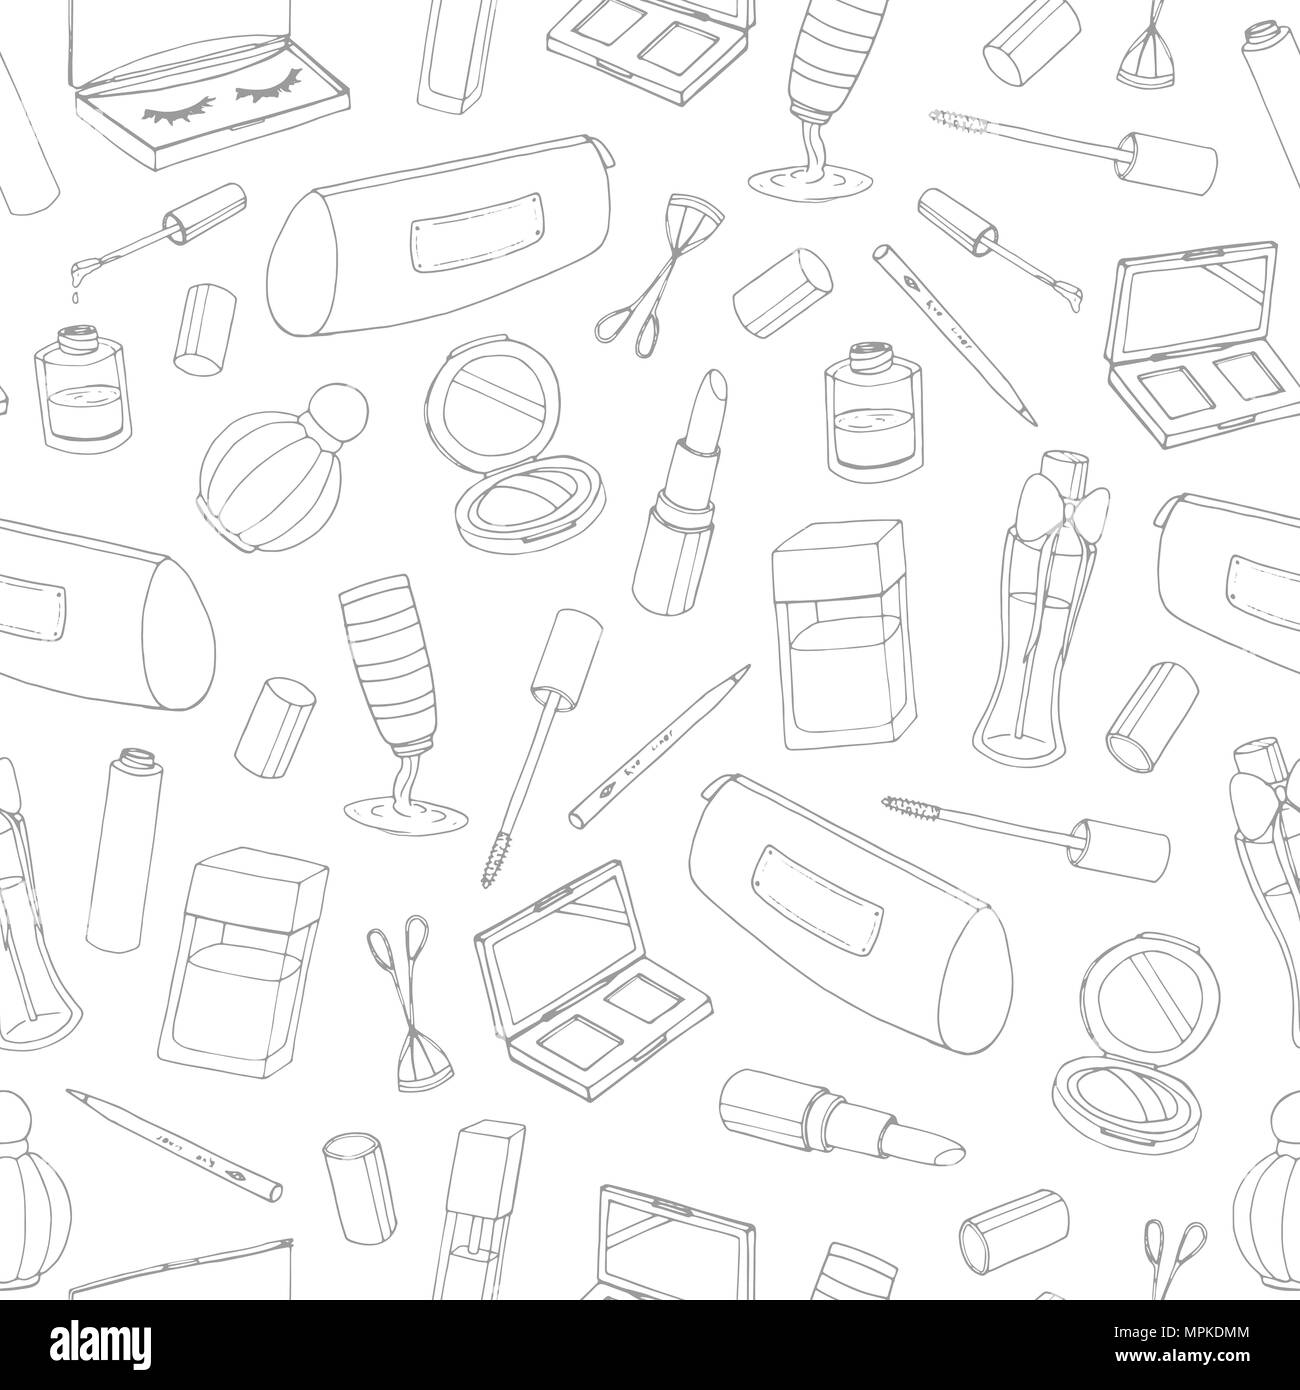 69f6640adec Vector cosmetics seamless pattern with bottles, lacquer, lipstick, eye  shadows, mascara and